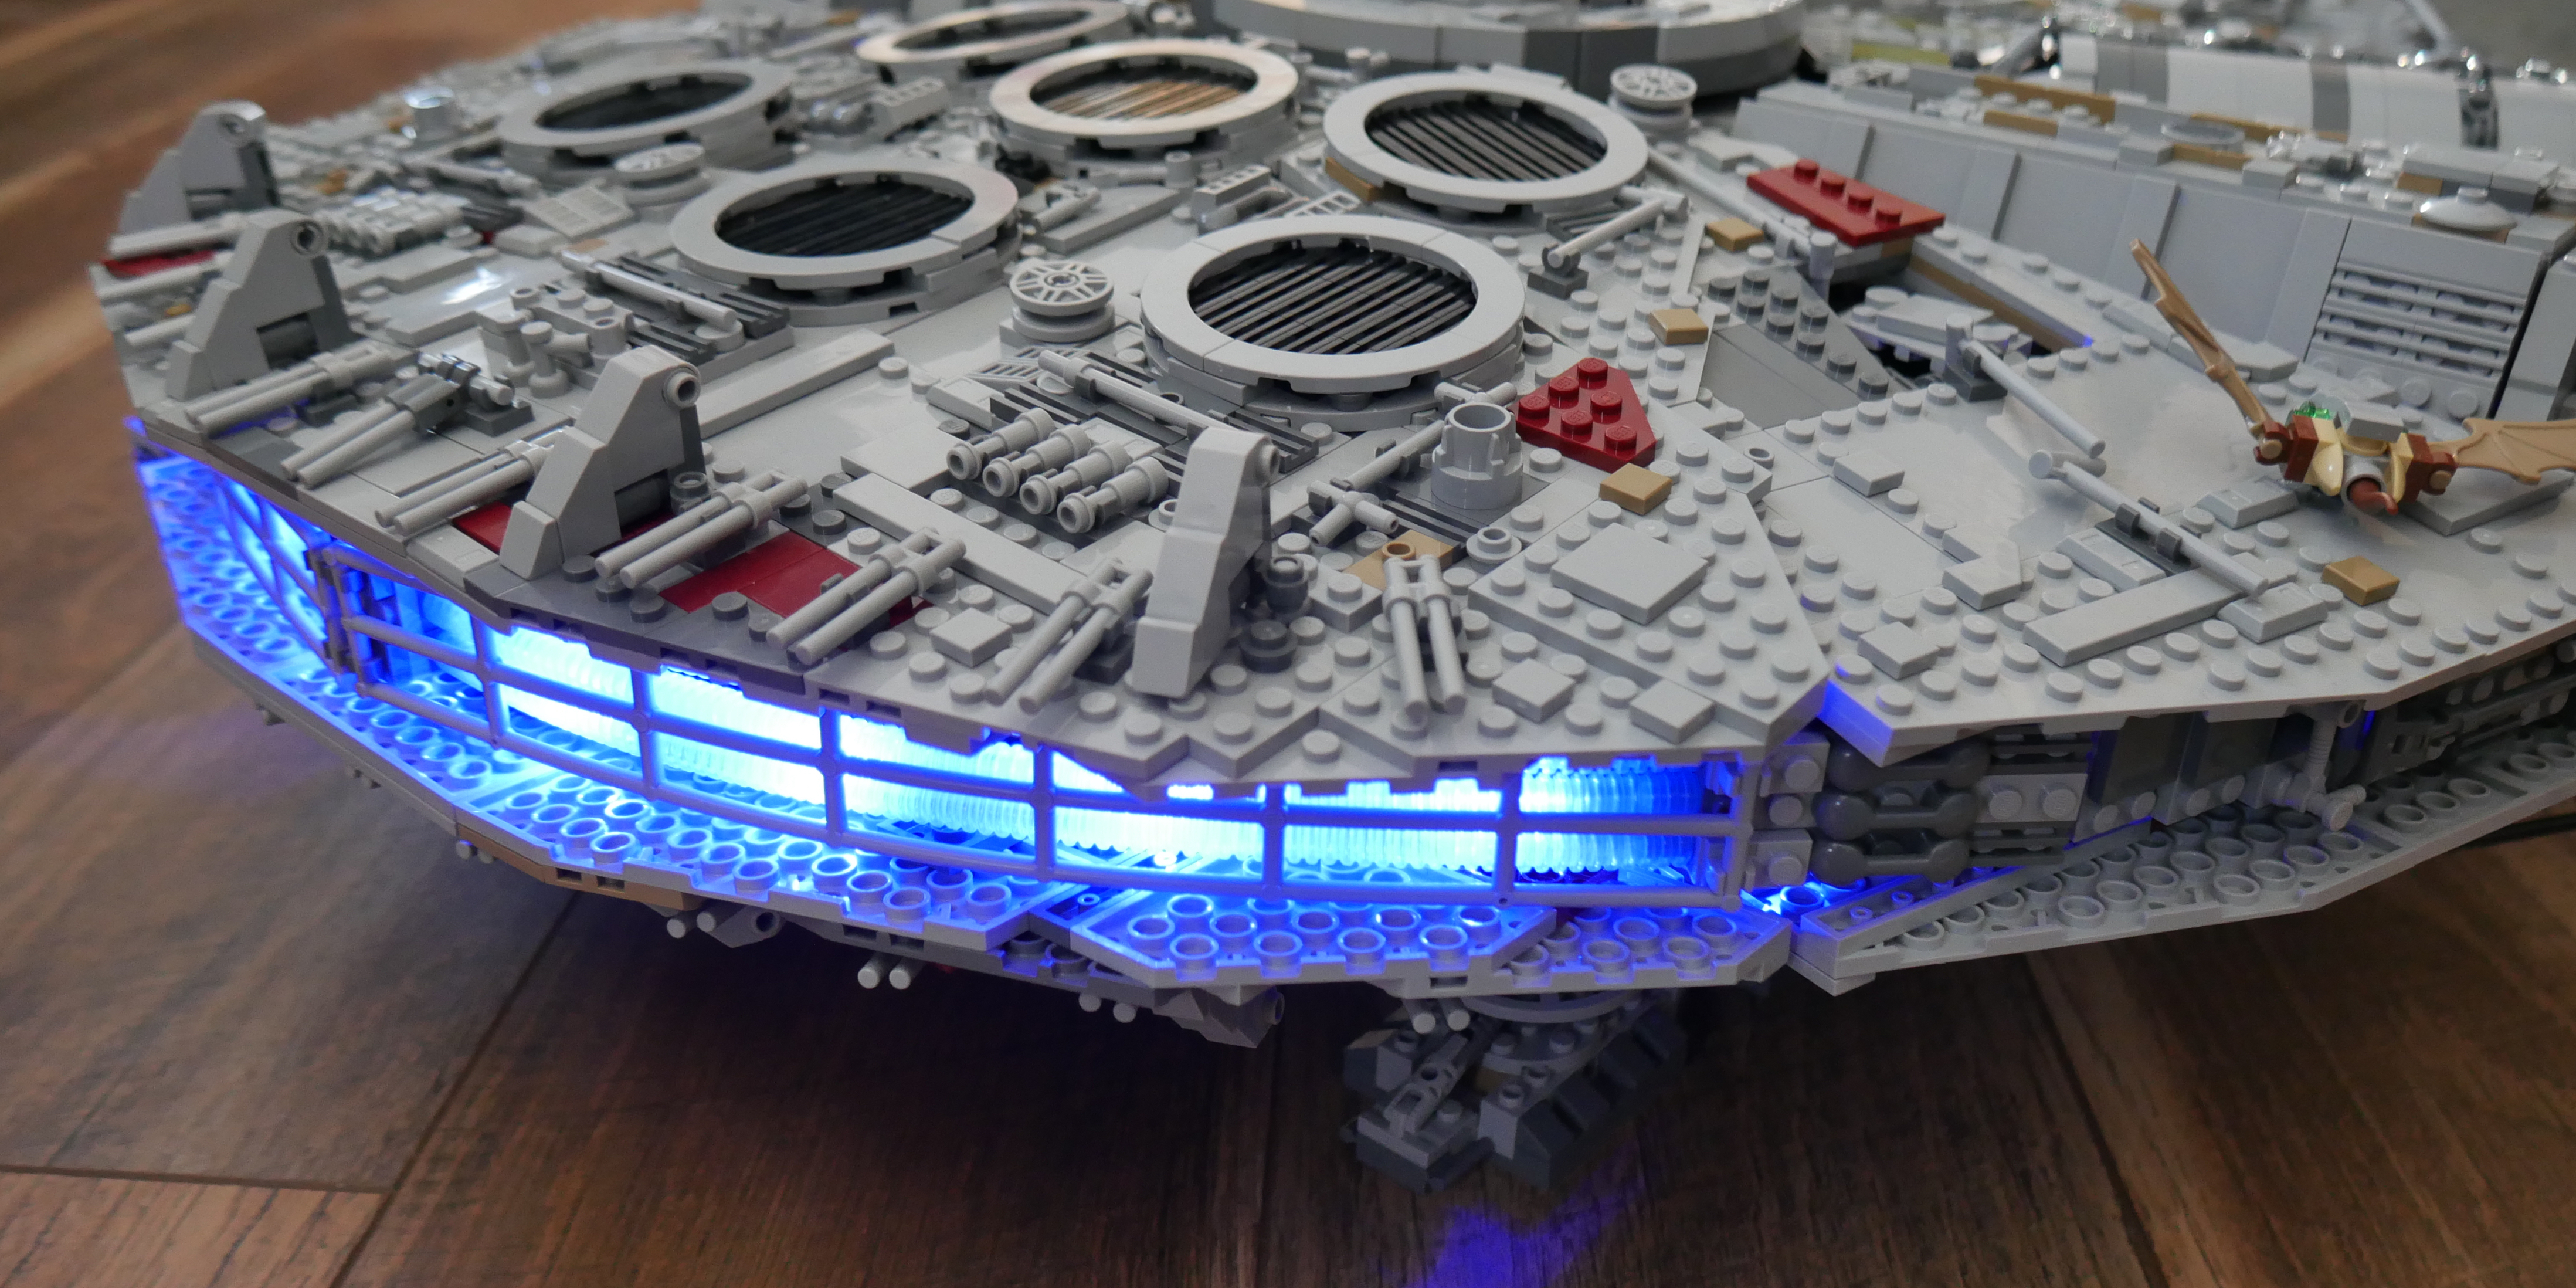 2a4167f0 LEGO UCS Millennium Falcon hands-on look - 9to5Toys